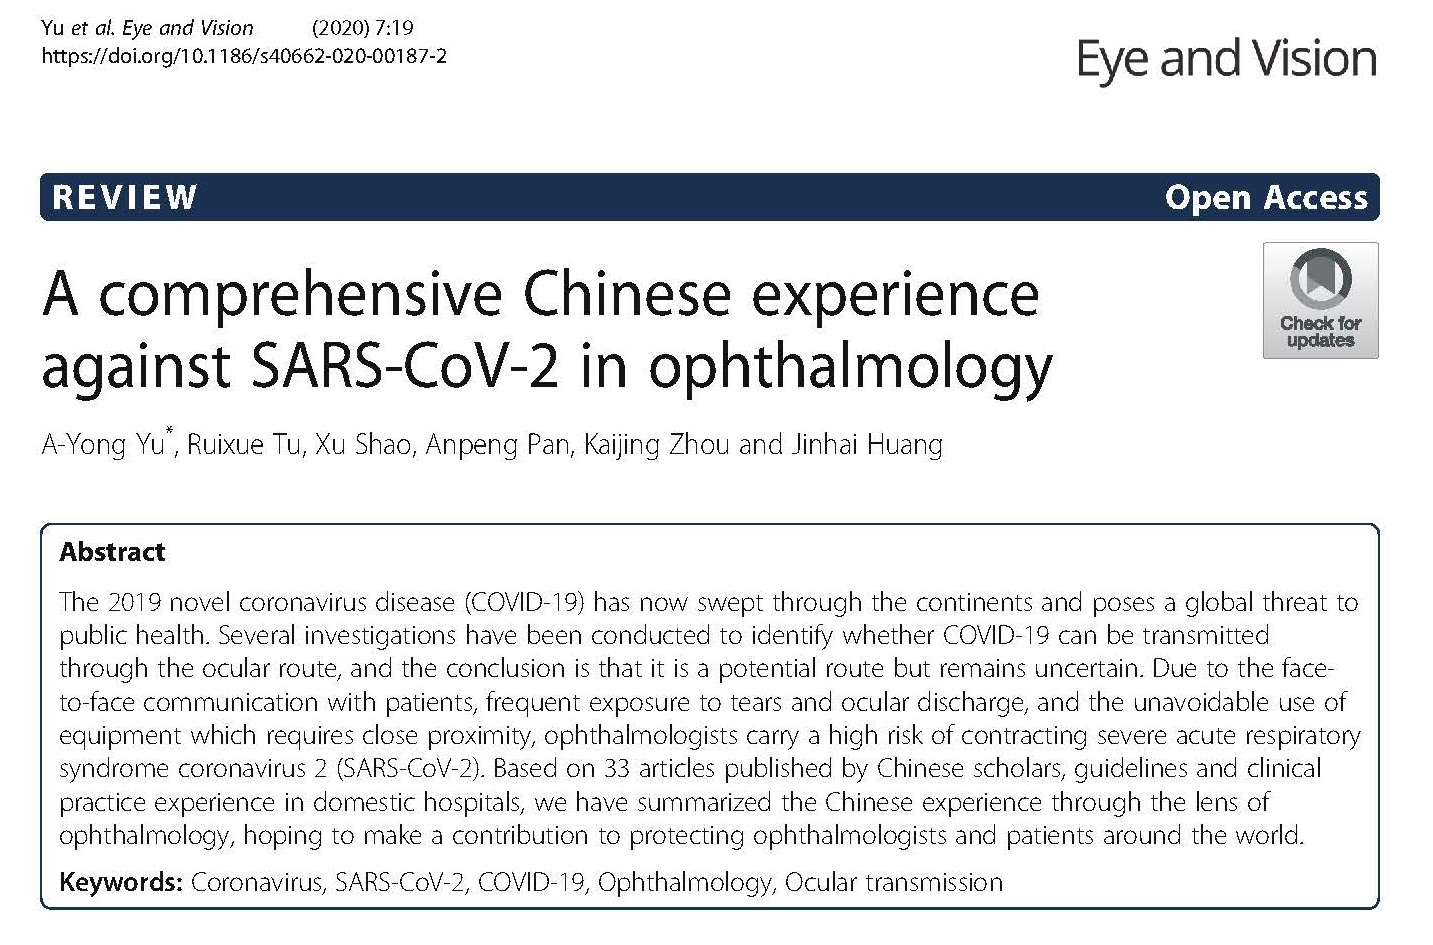 A comprehensive Chinese experience against SARS-CoV-2 in ophthalmology